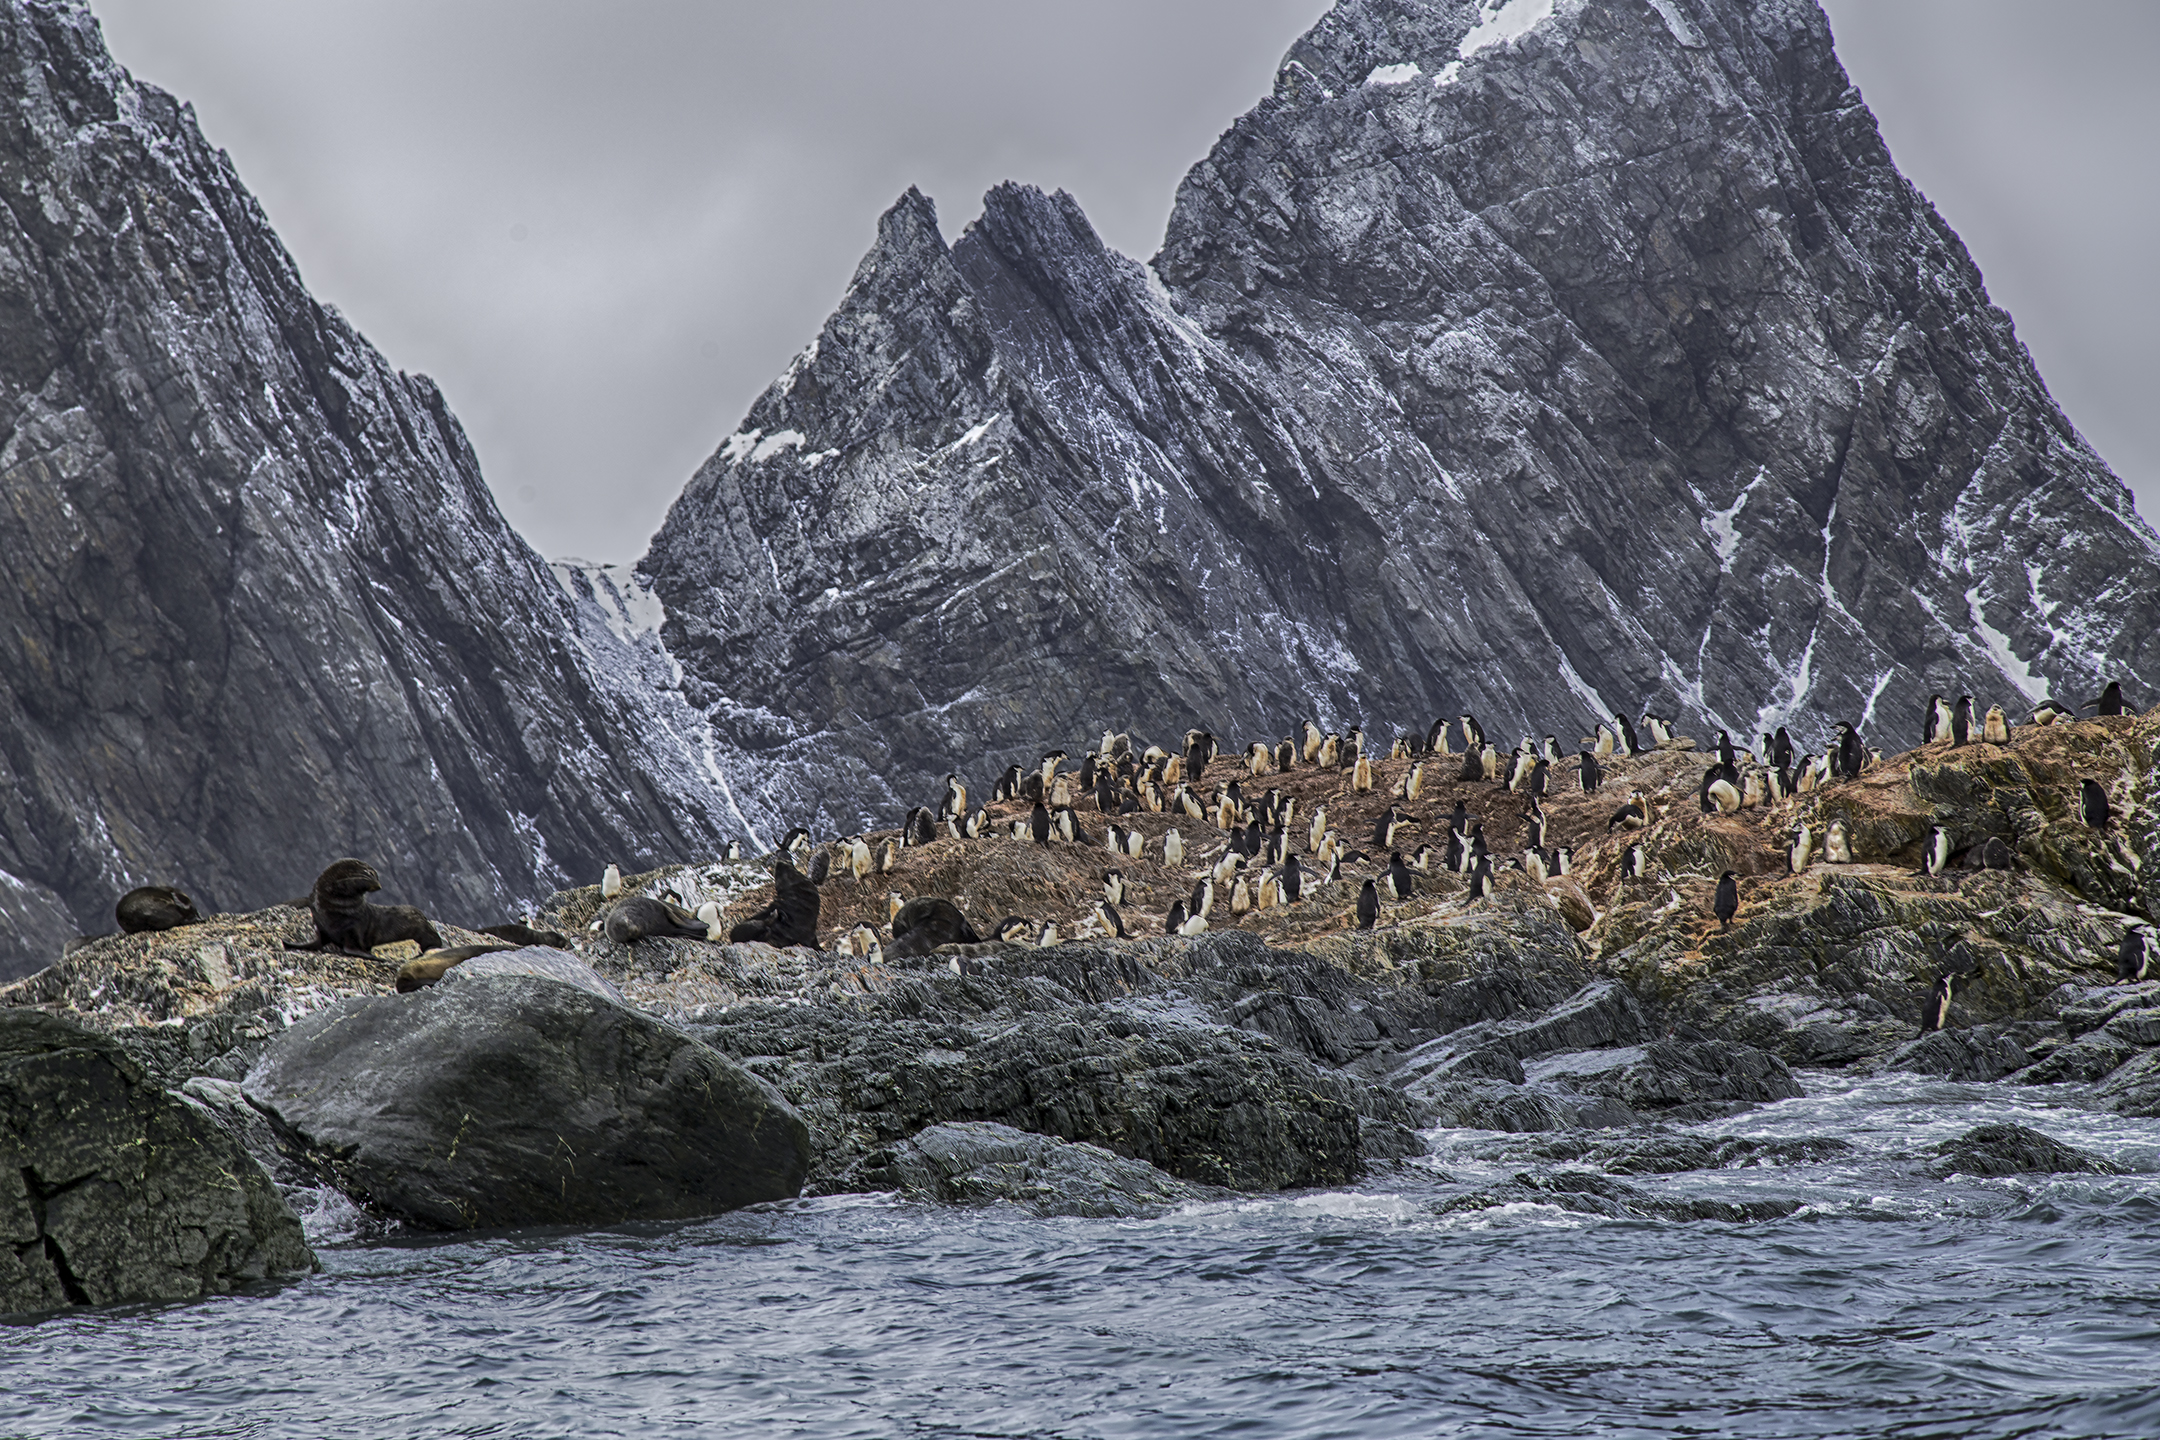 Penguins and Fur Seals on Elephant Island